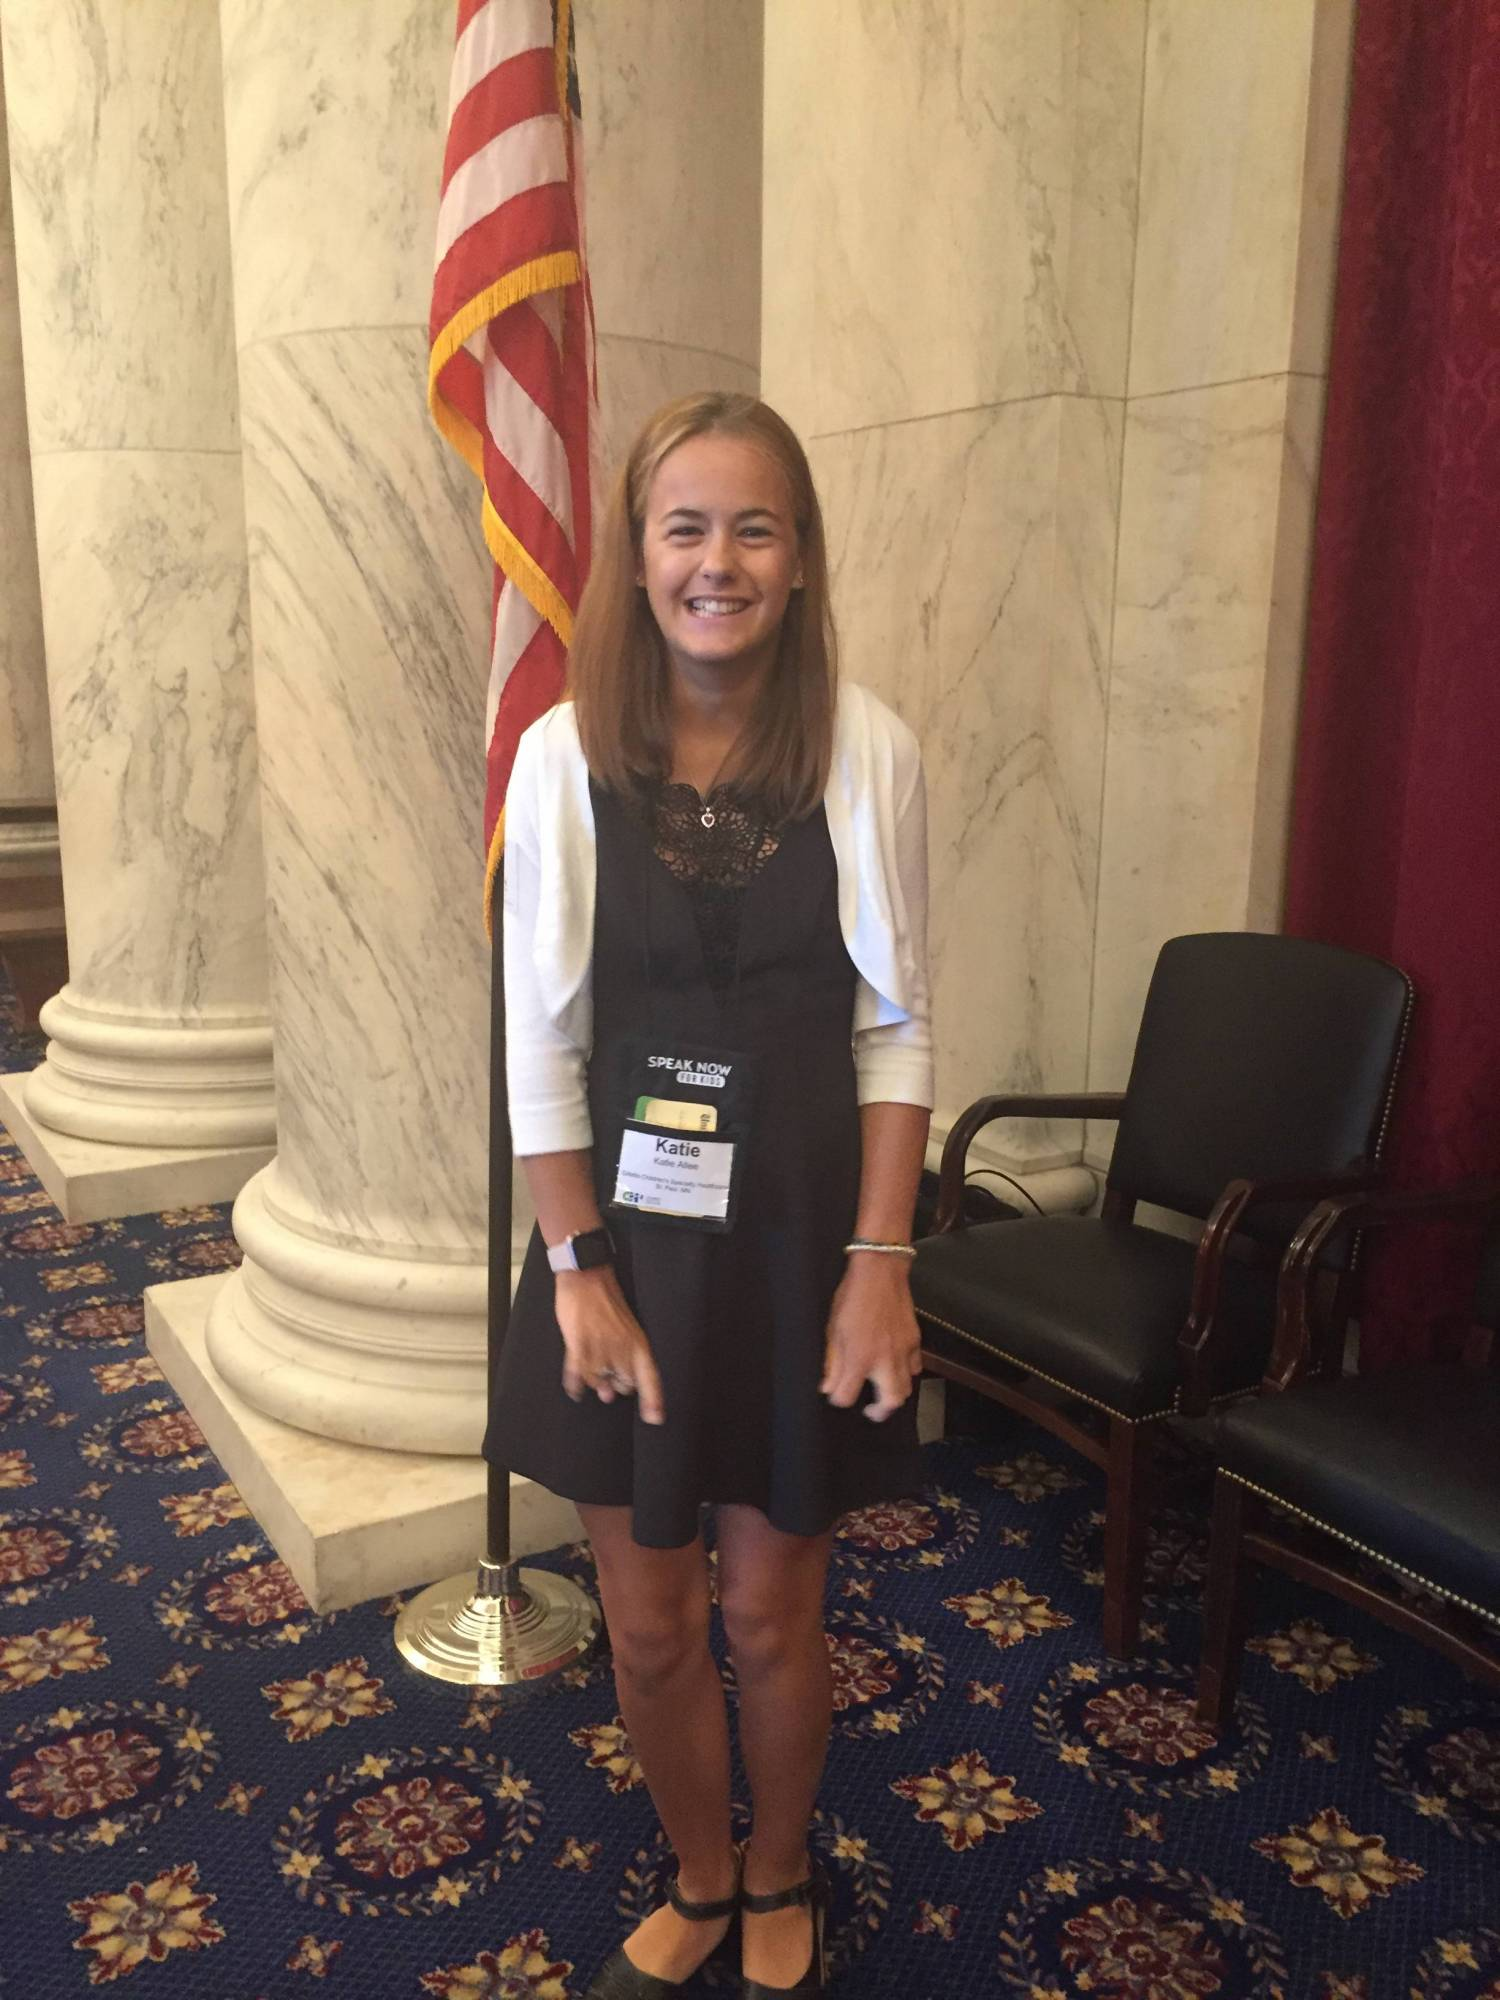 Katie Allee proudly represented Gillette in Washington, D.C.